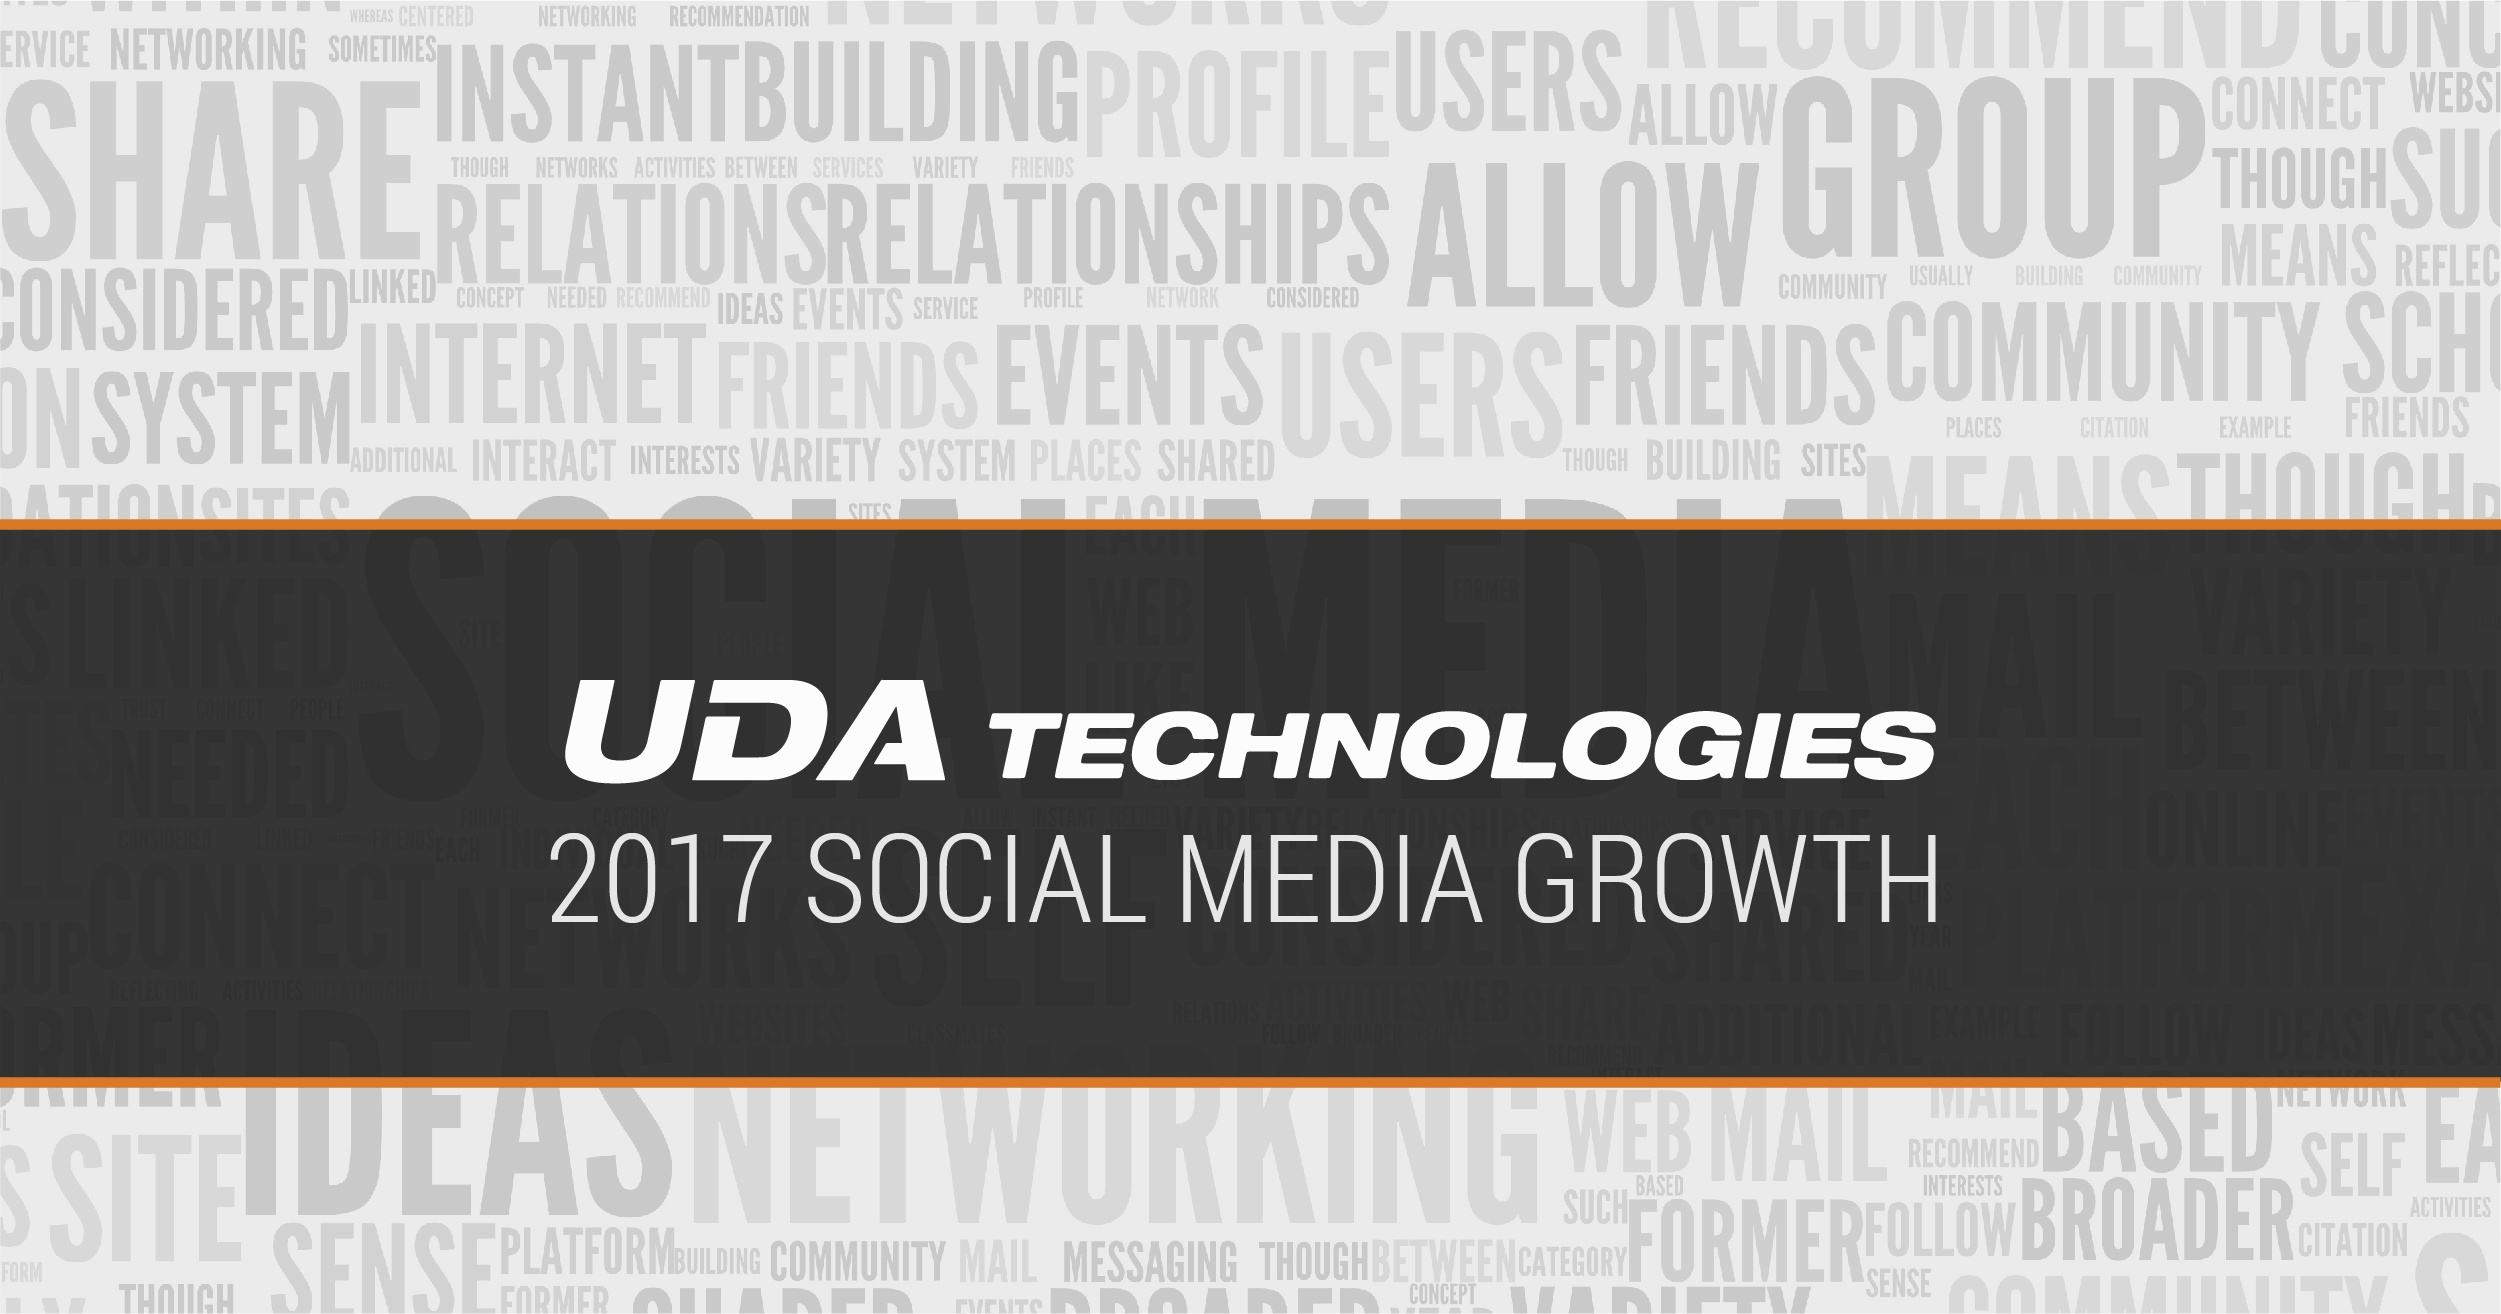 UDA Technologies Reports Explosive Social Media Growth in 2017